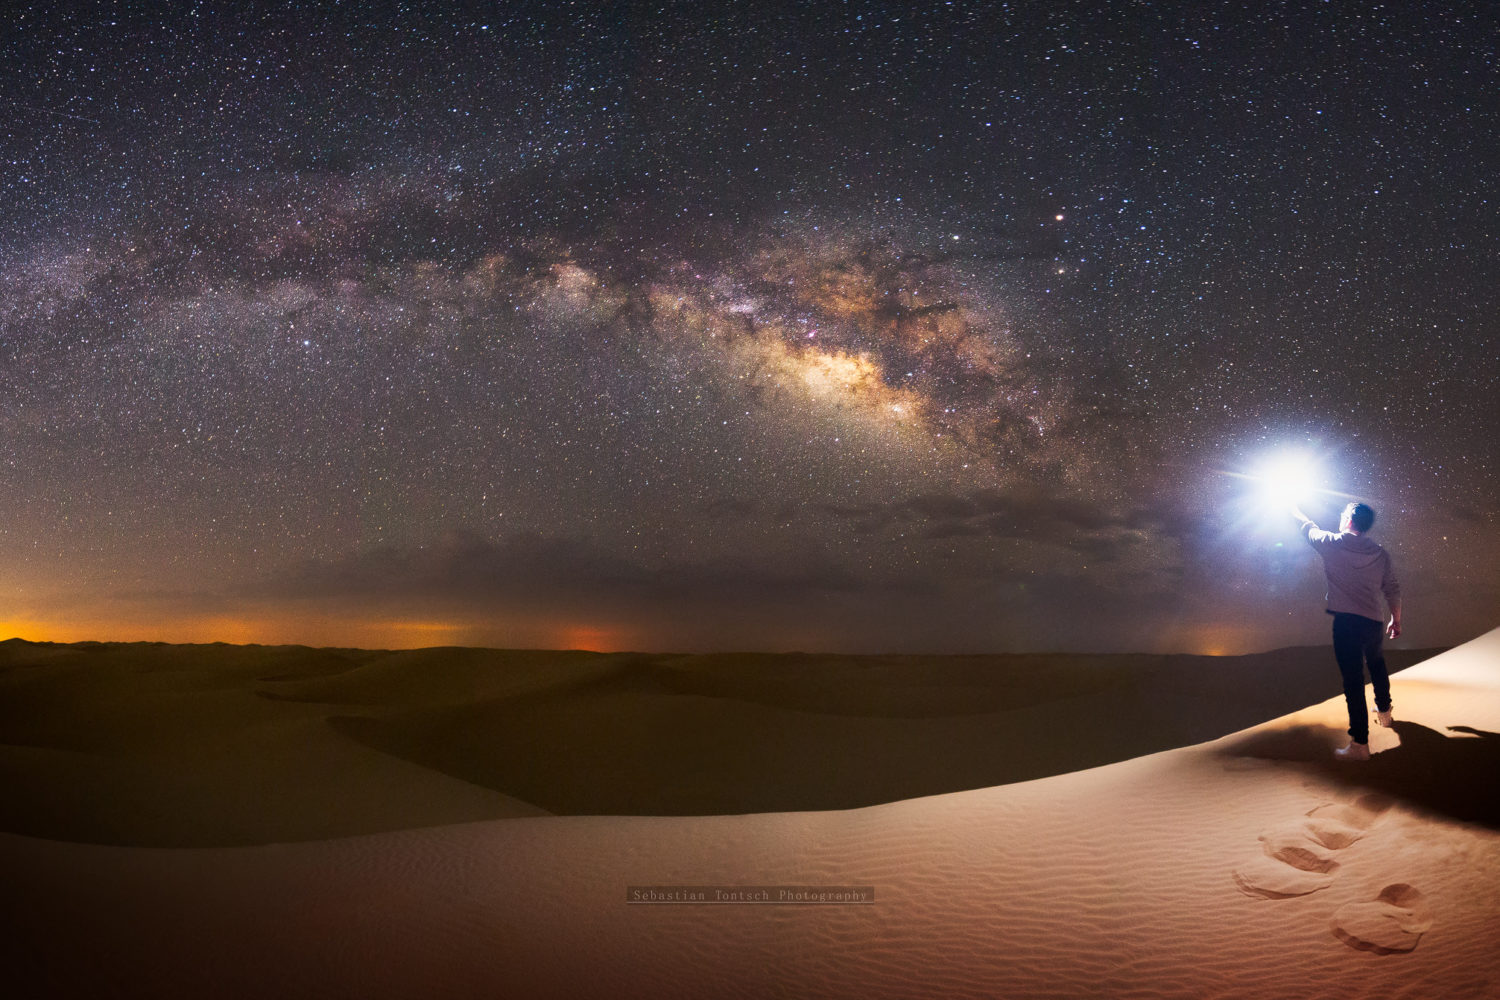 10 Tips For Taking Milky Way Photos in the Desert